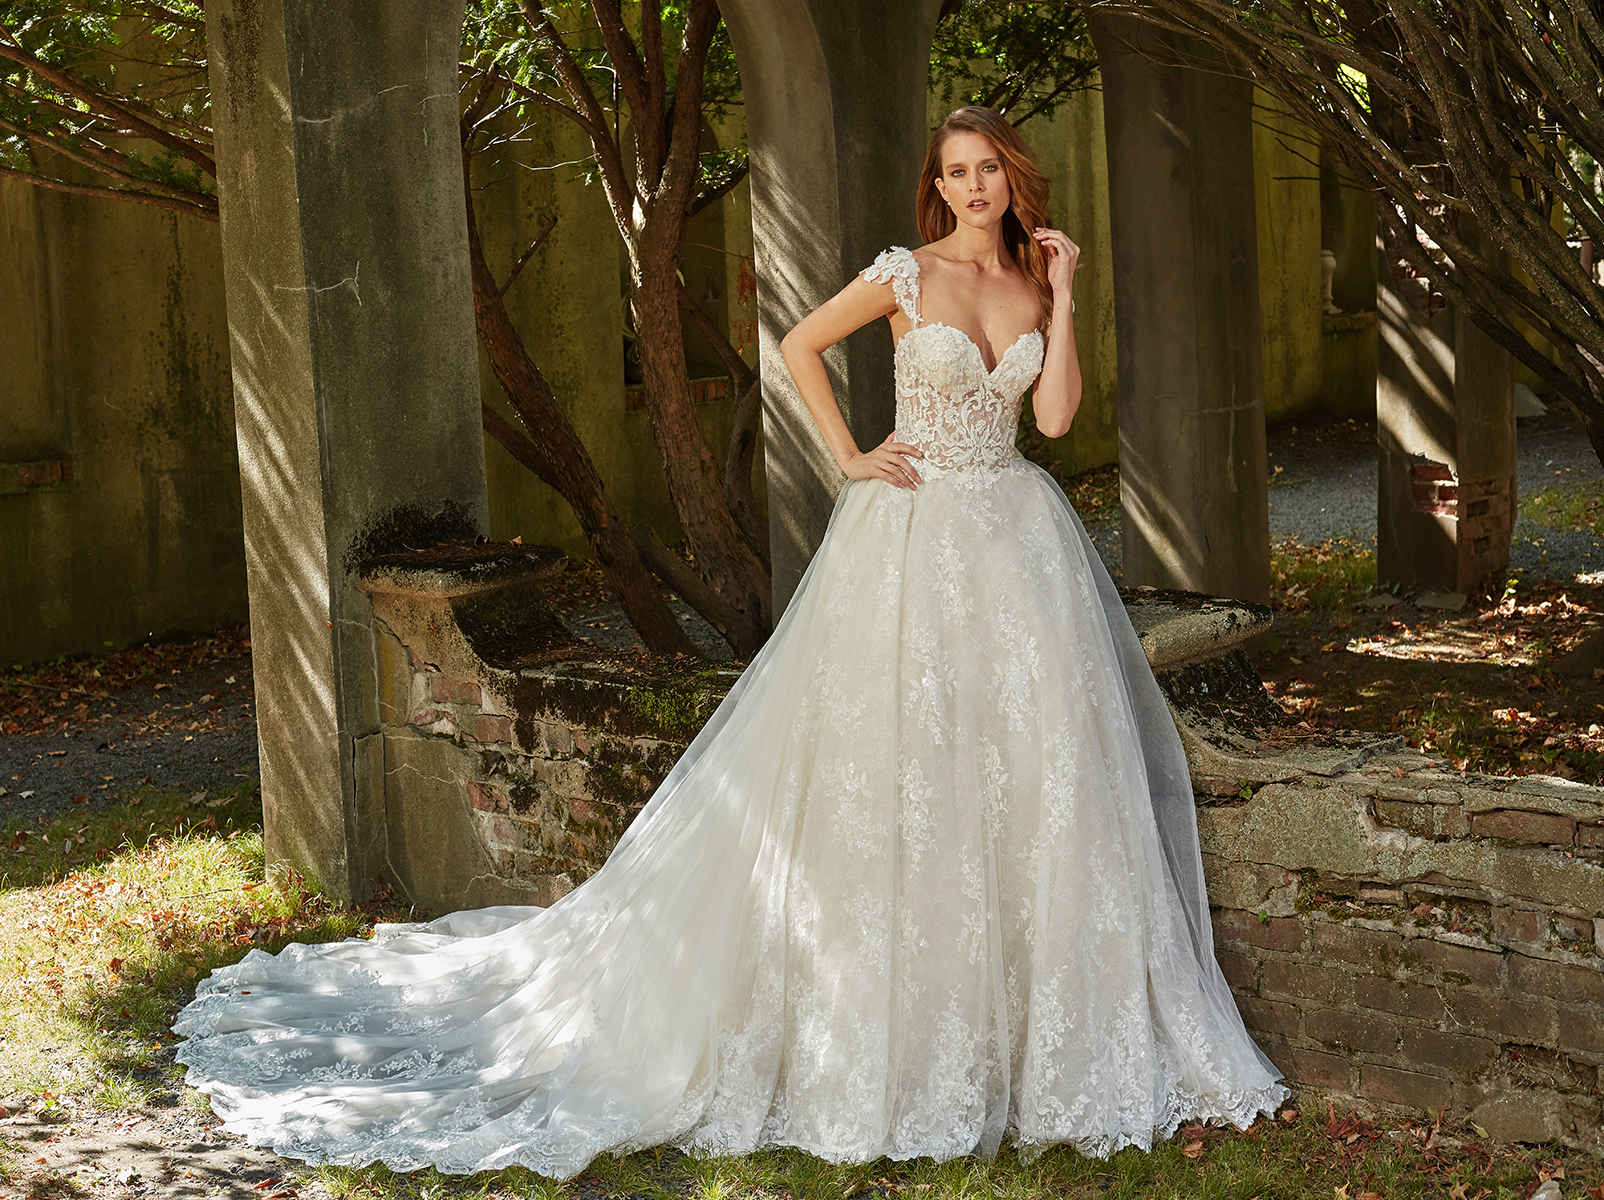 Sweetheart Neck Illusion Bodice With Beaded Lace And Full Skirt ...